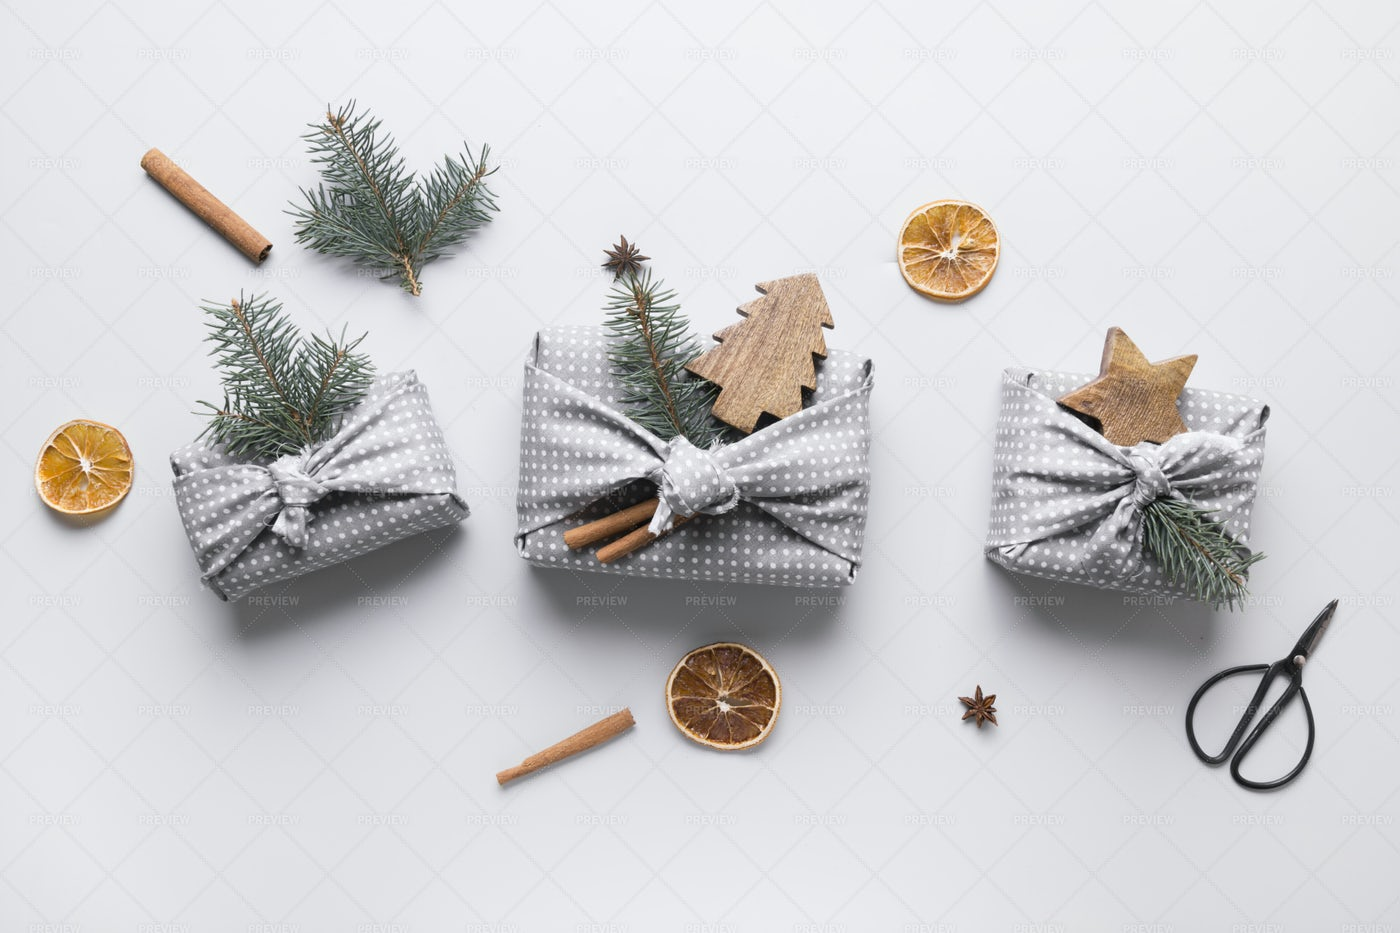 Gifts Wrapped In Textile: Stock Photos